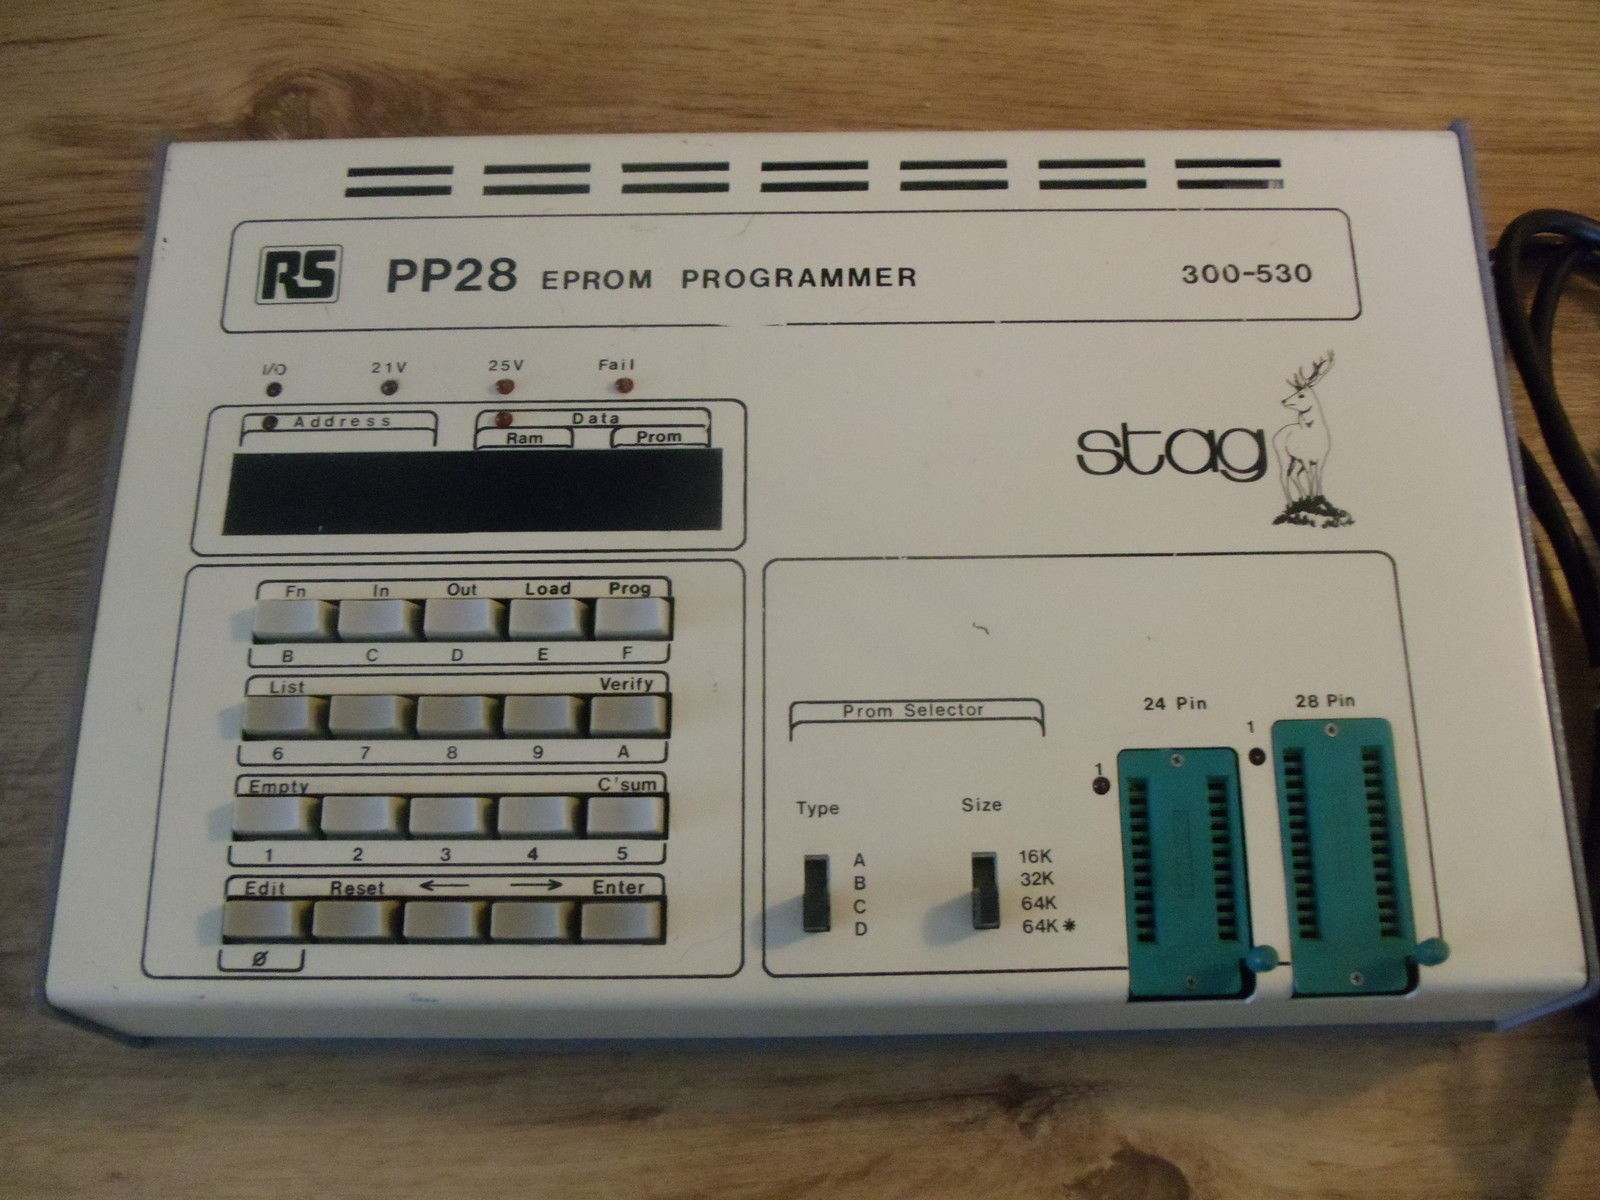 Resources Index Lt1074 Stepdown Switching Regulator Linear Technology Stag Pp 28 Programmer